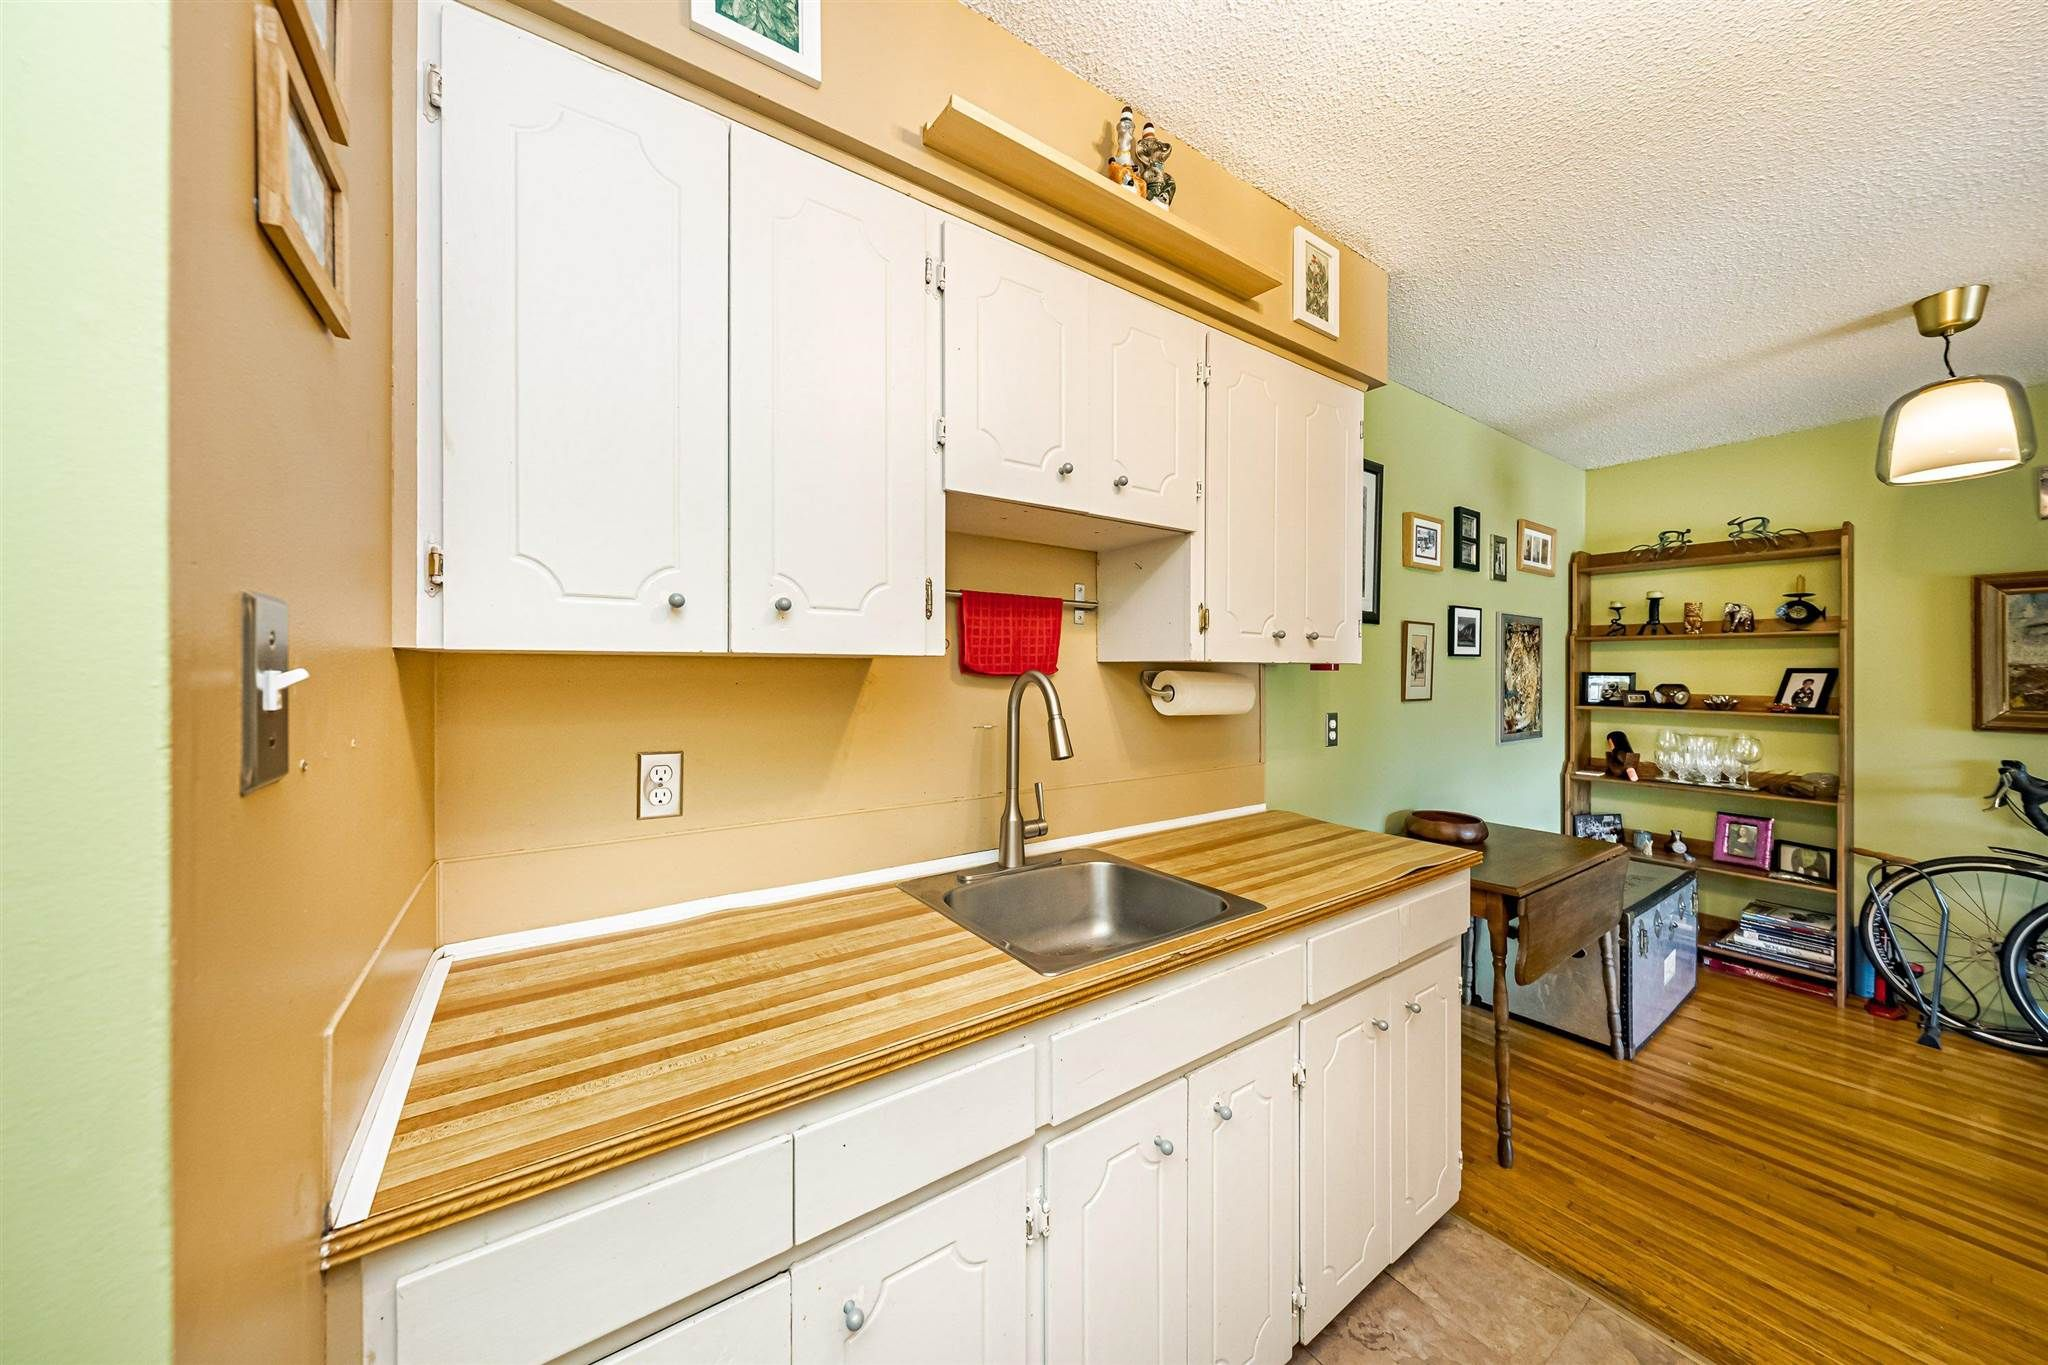 Photo 13: Photos: 57 2002 ST JOHNS Street in Port Moody: Port Moody Centre Condo for sale : MLS®# R2602252